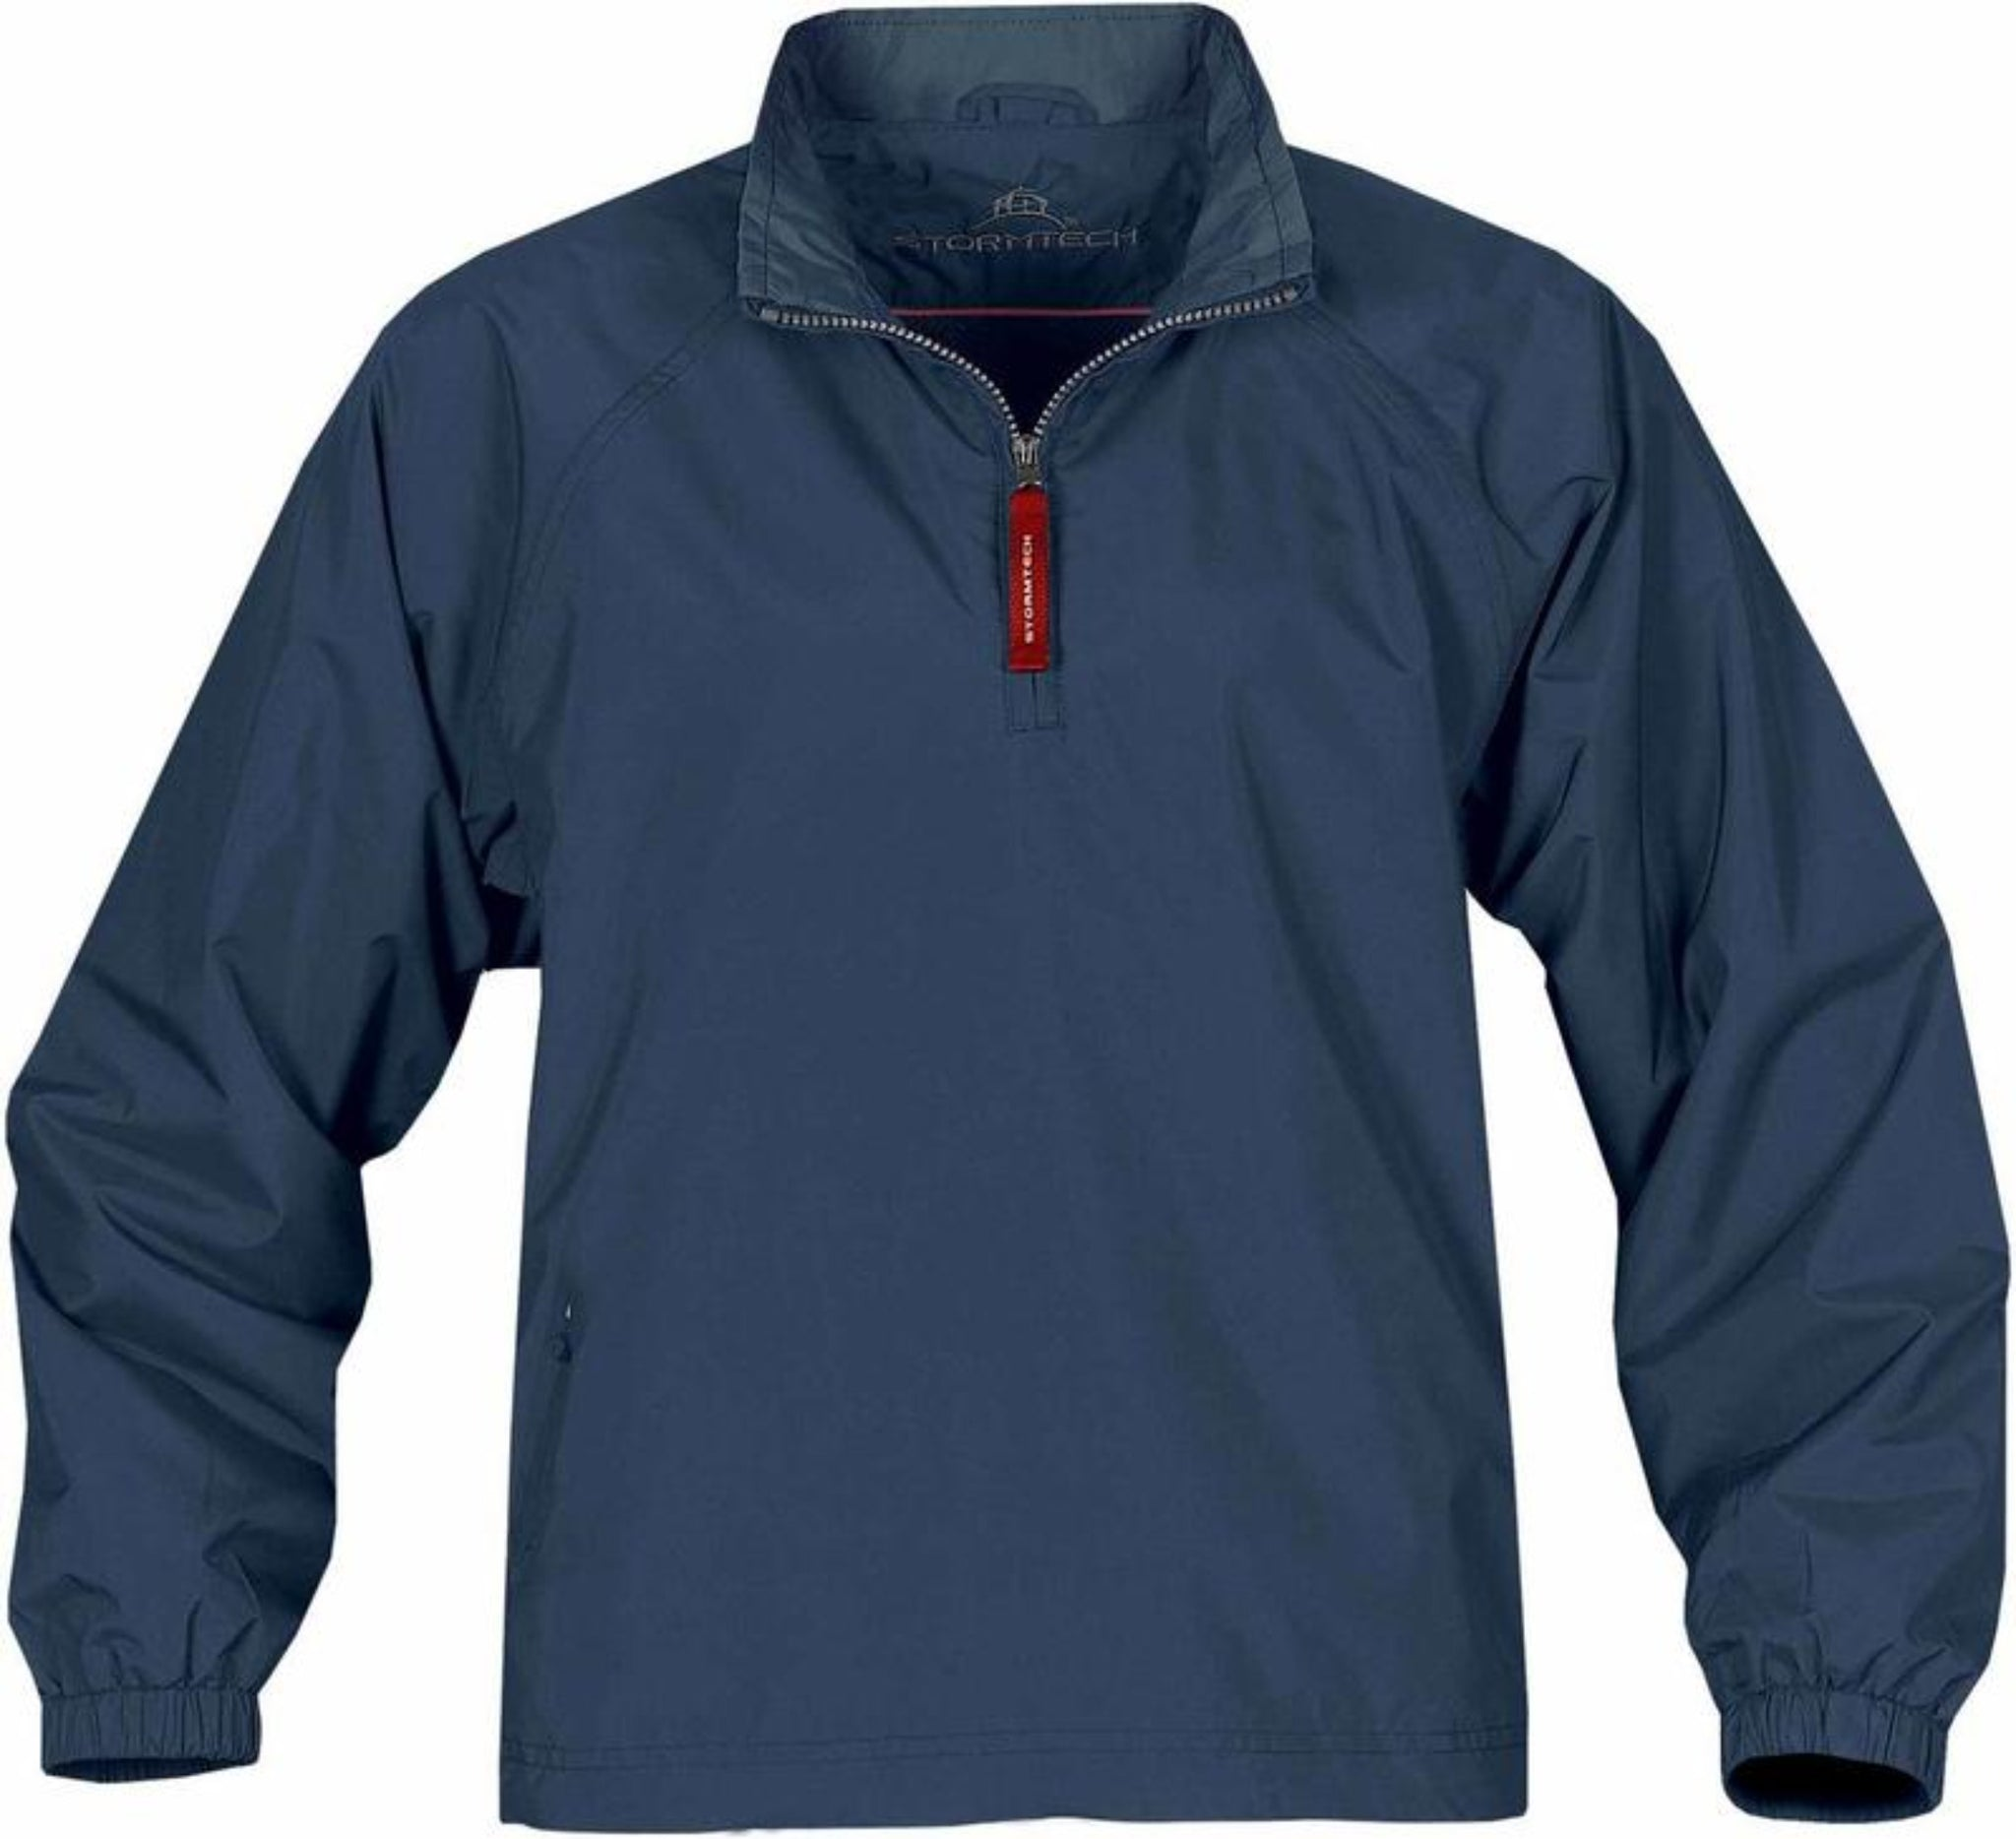 STORMTECH LADIES LONG SLEEVE 1/4 ZIP WINDSHIRT